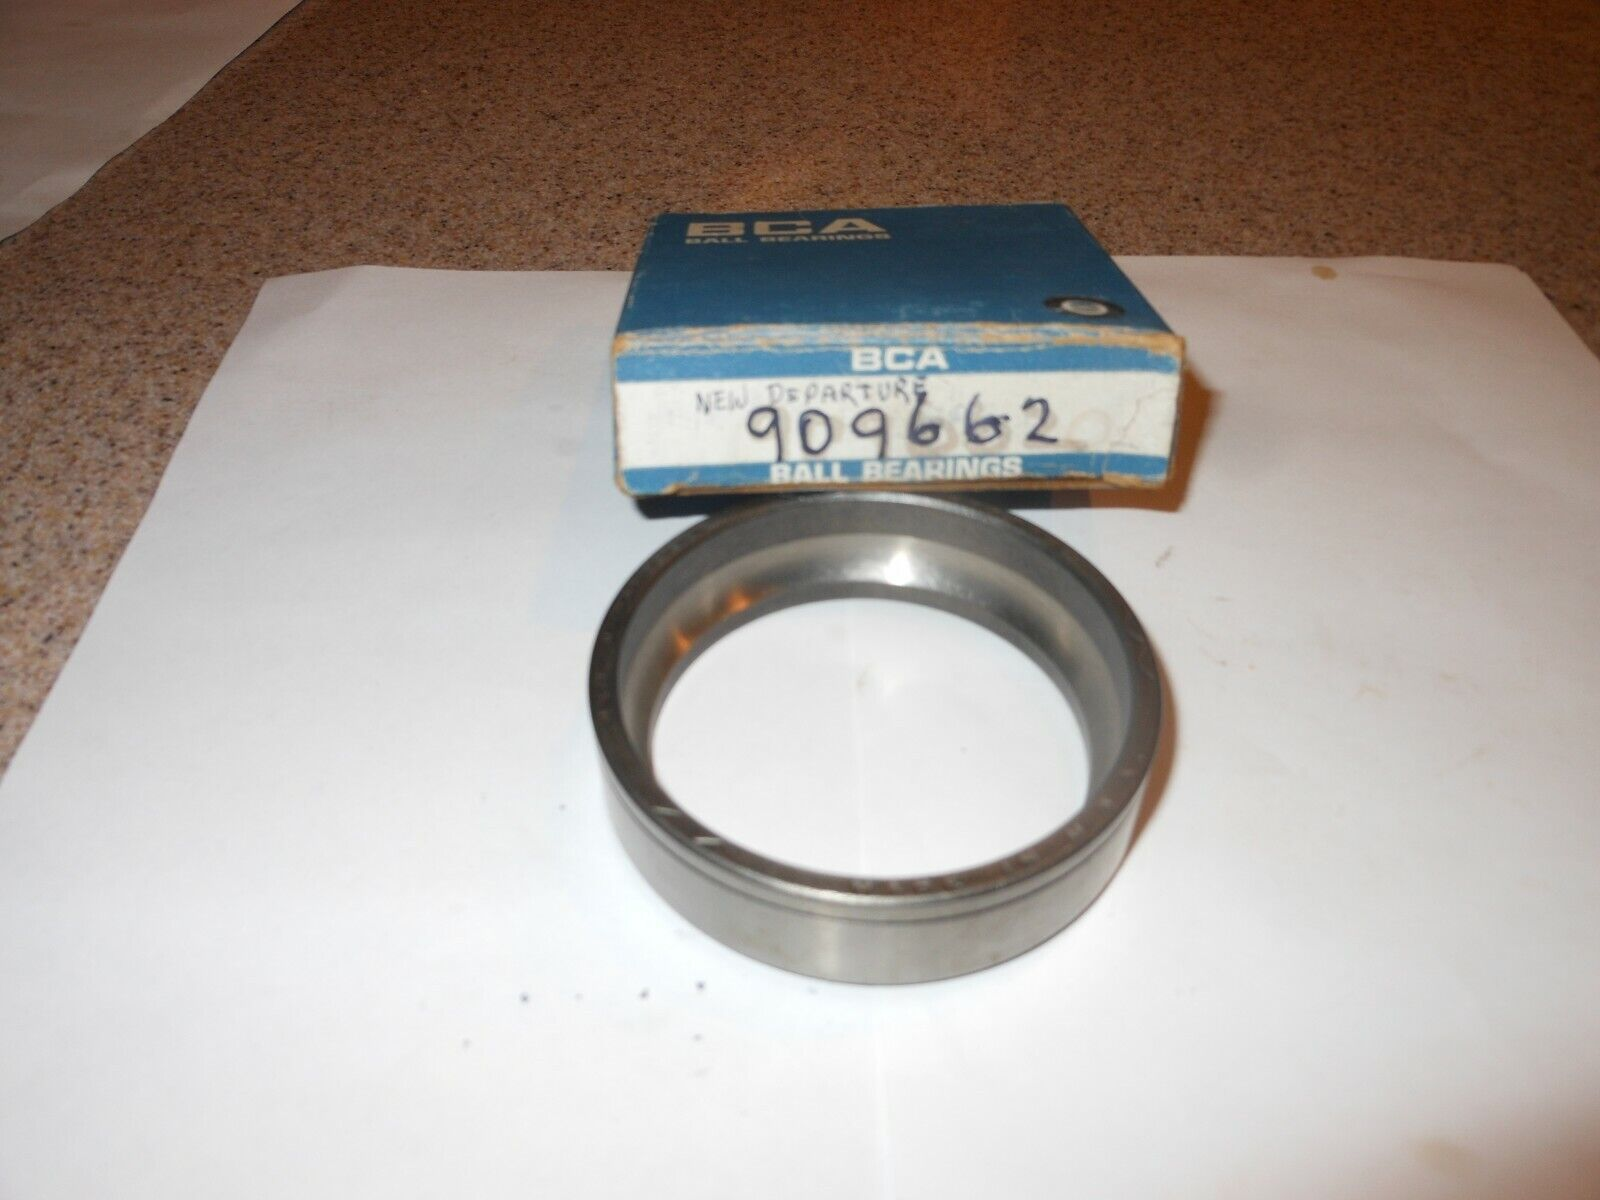 NEW DEPARTURE 909662 BALL BEARING RACE MADE IN USA FREE SHIPPING - $13.99